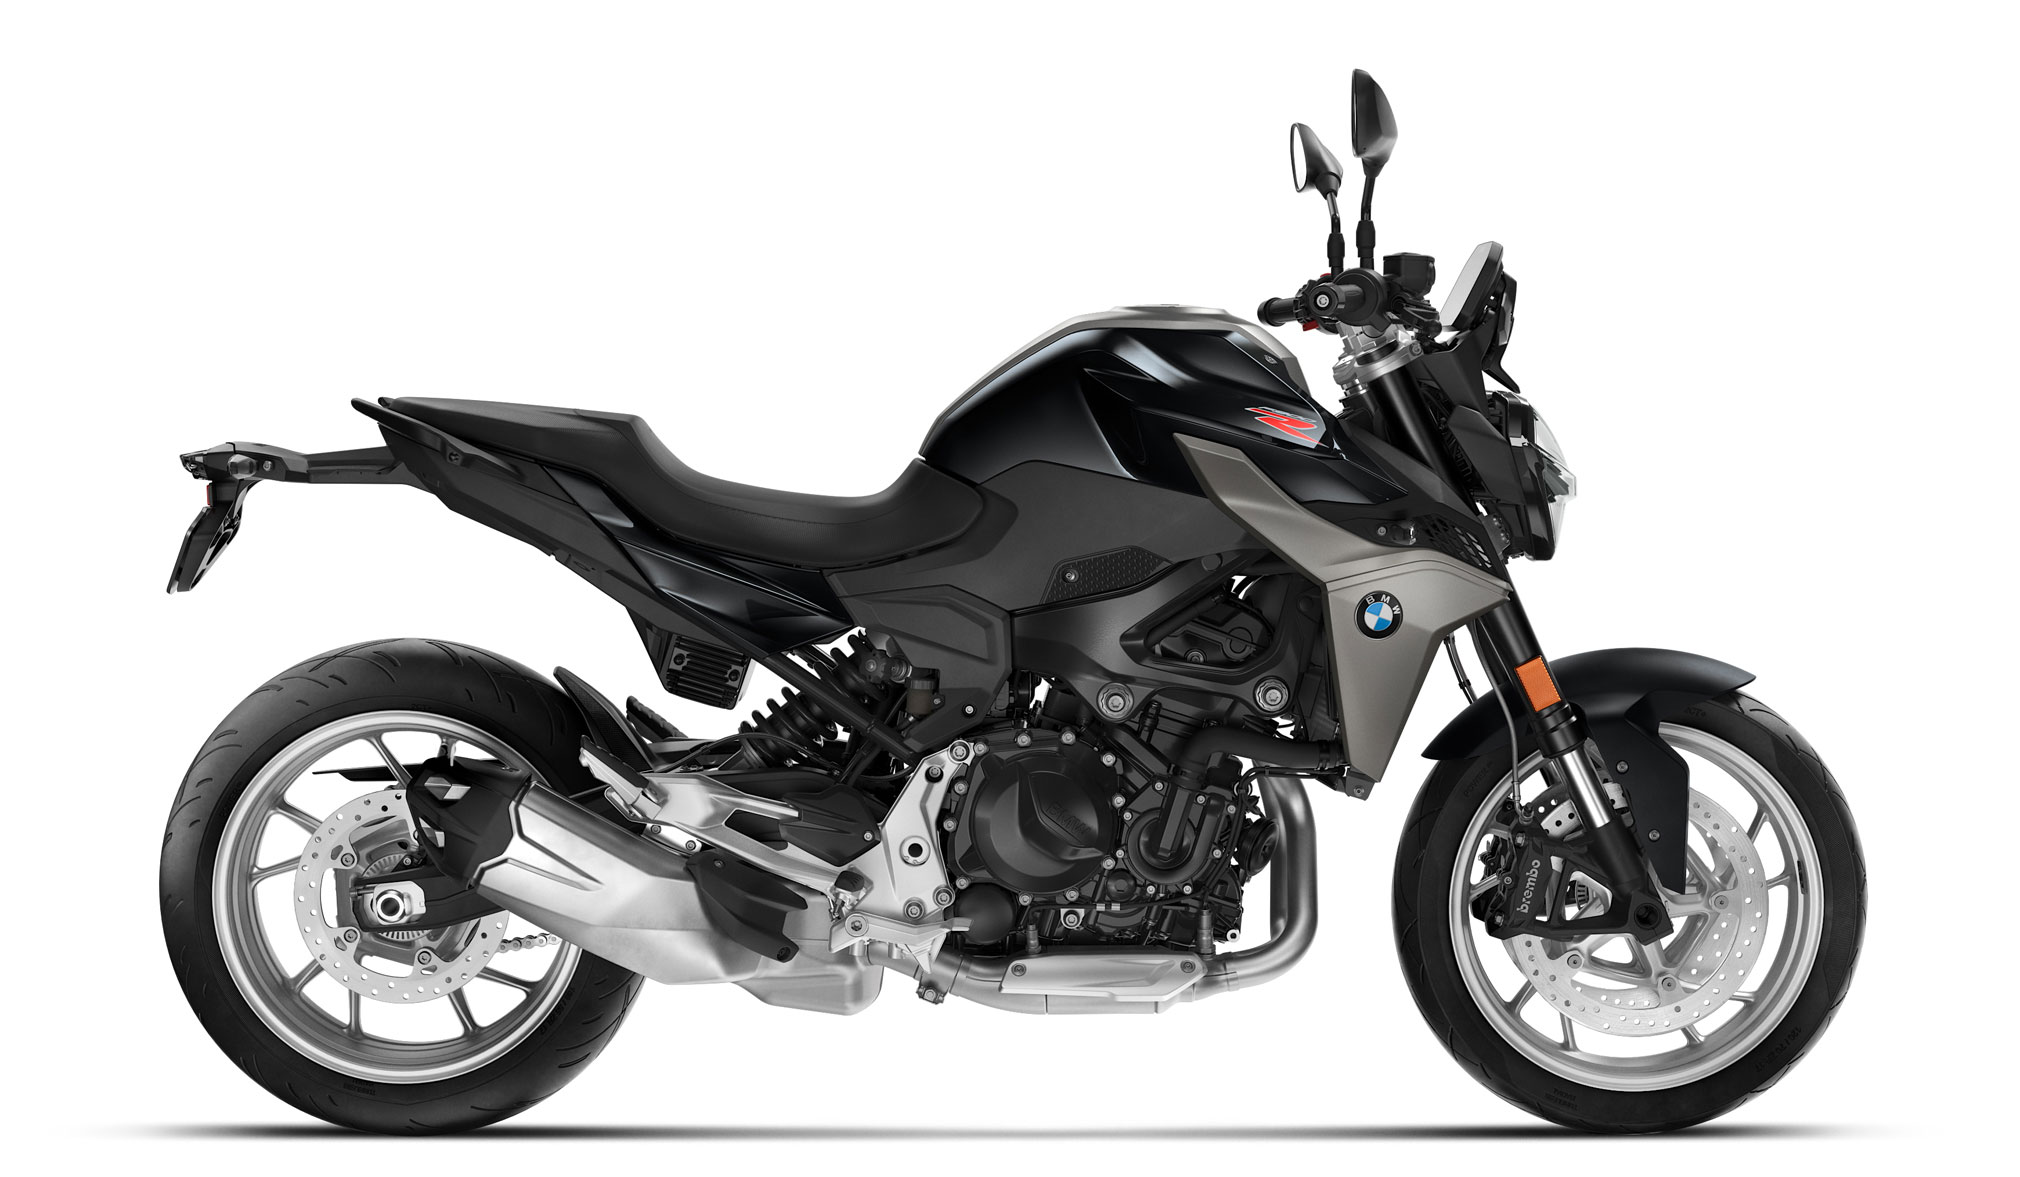 2020 bmw f900r guide • total motorcycle